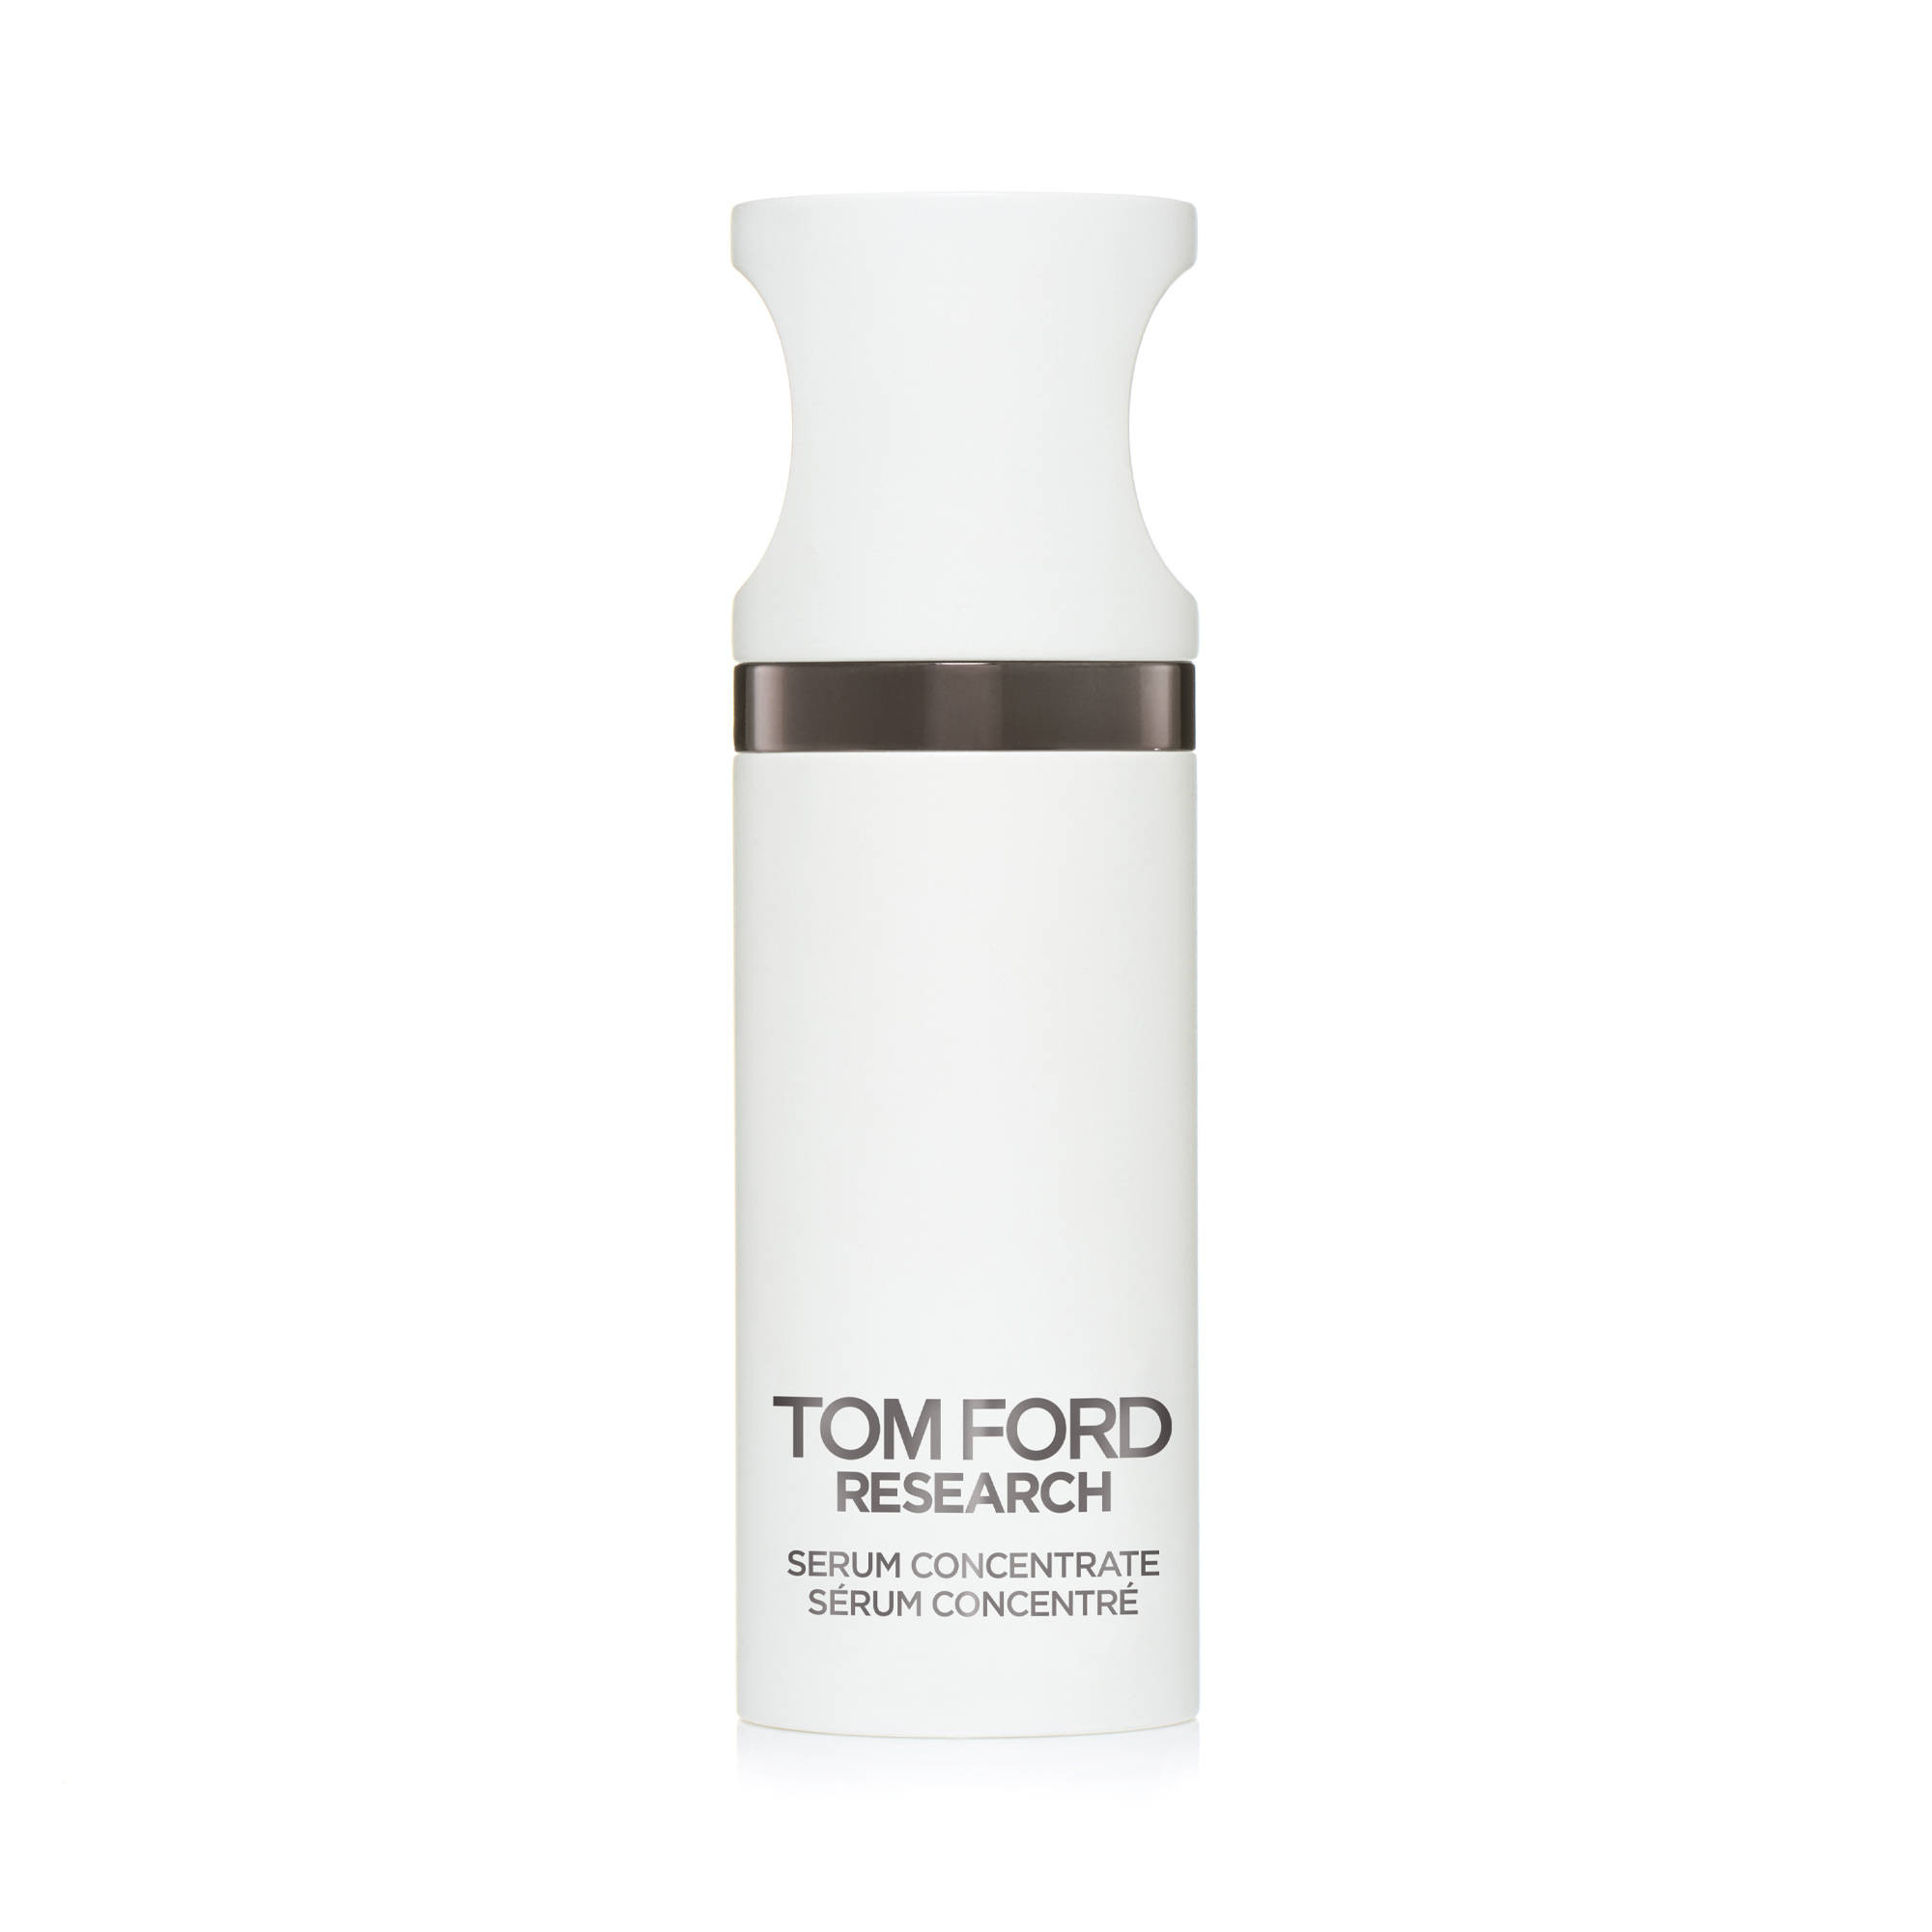 Tom Ford Research Serum, Tom Ford Research. Photo: Tom Ford Beauty